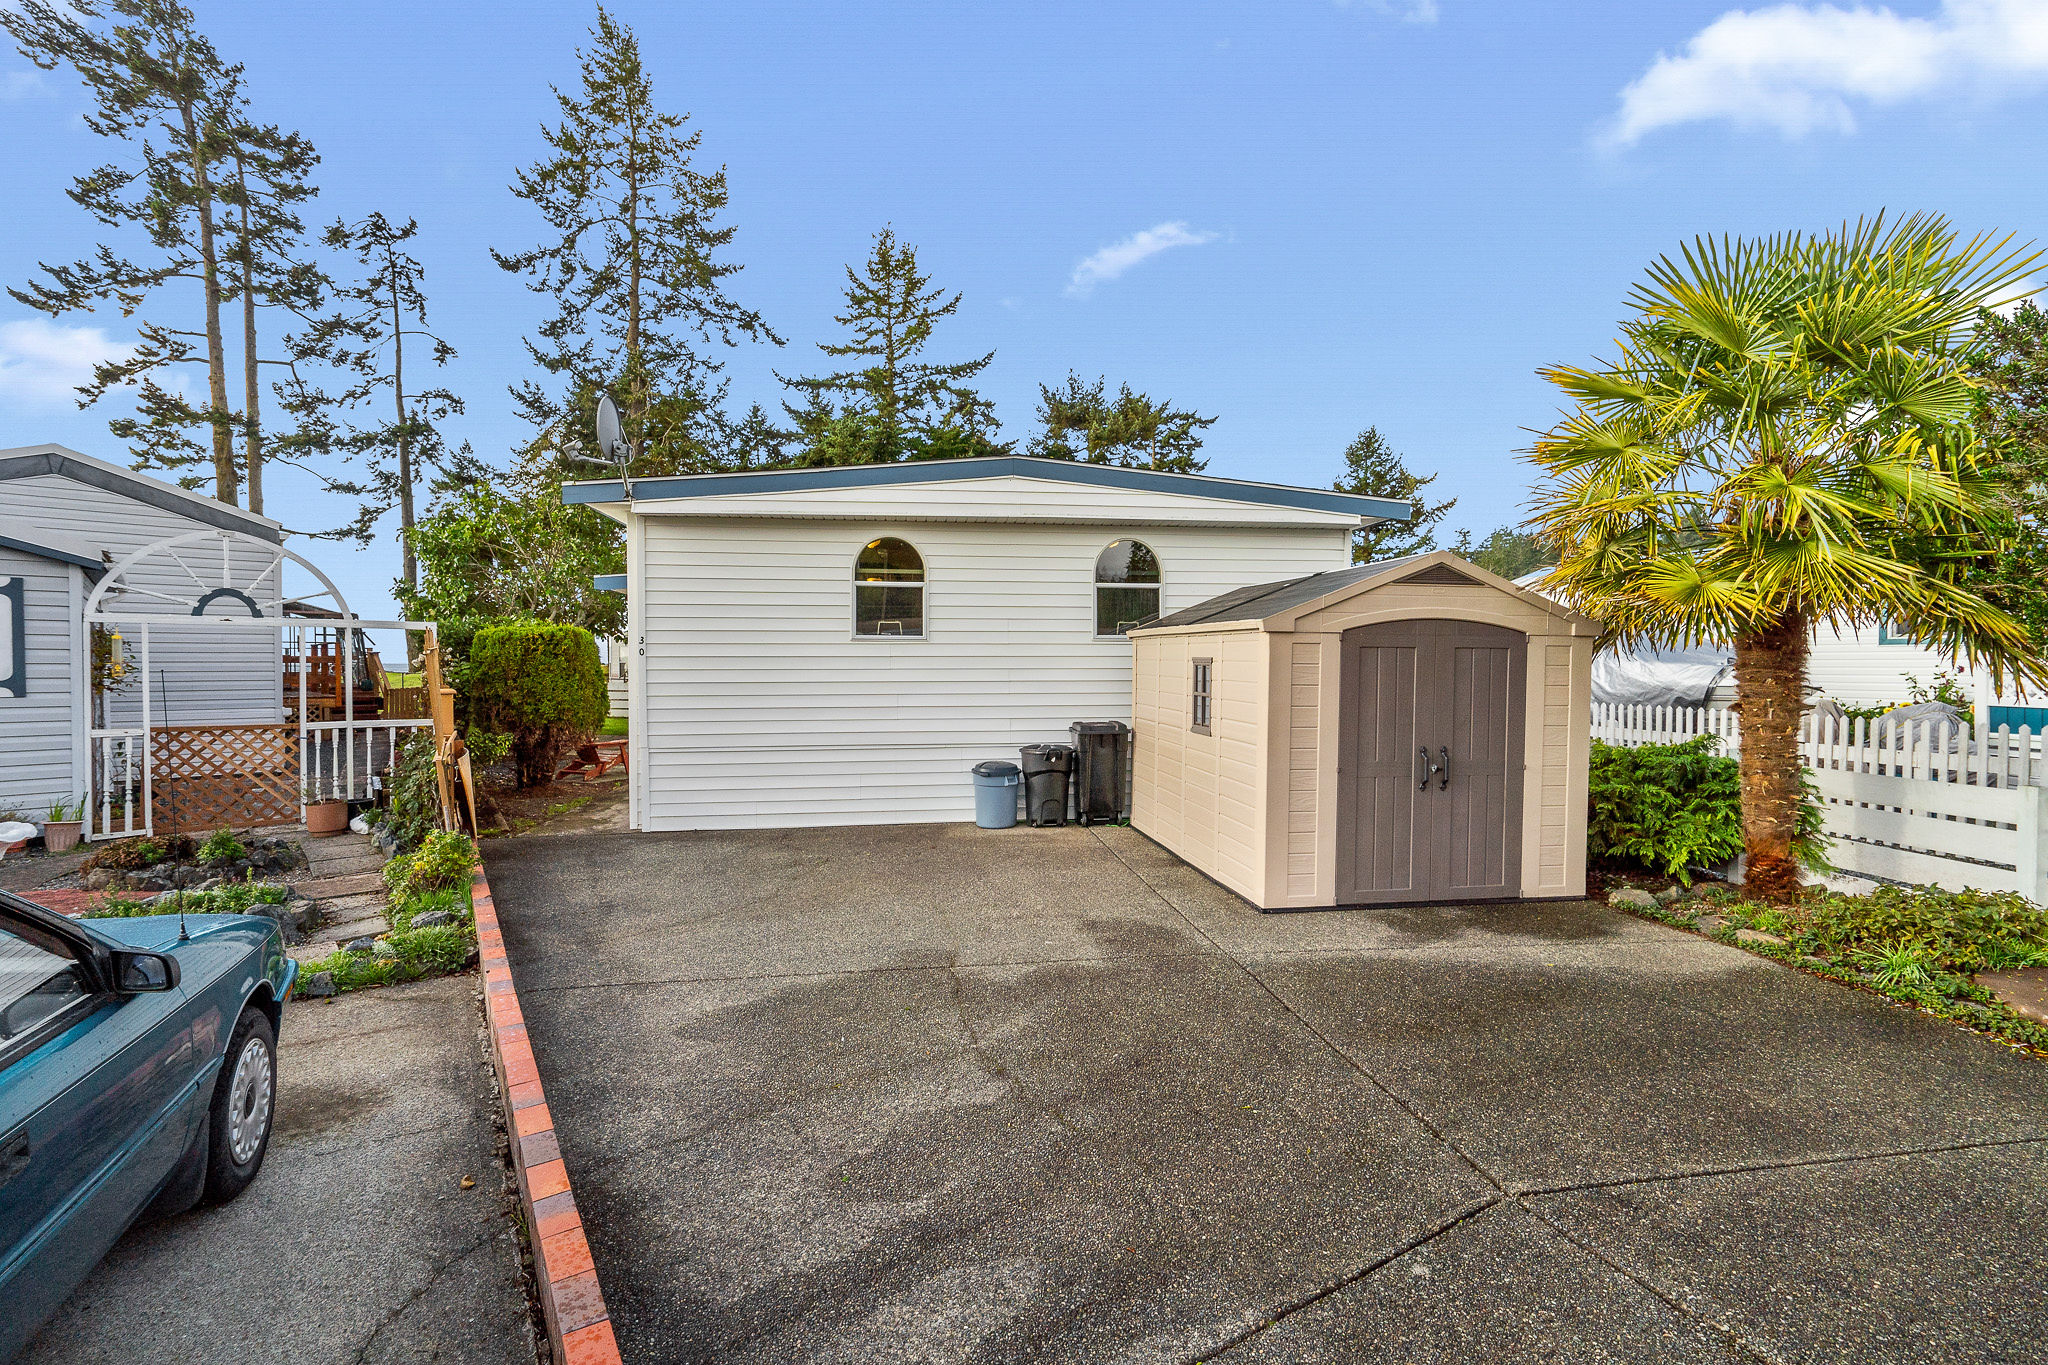 Affordable Seaside Living in Sooke - Waterfront Location - Tidy 2 bedroom manufactured Home $359,900